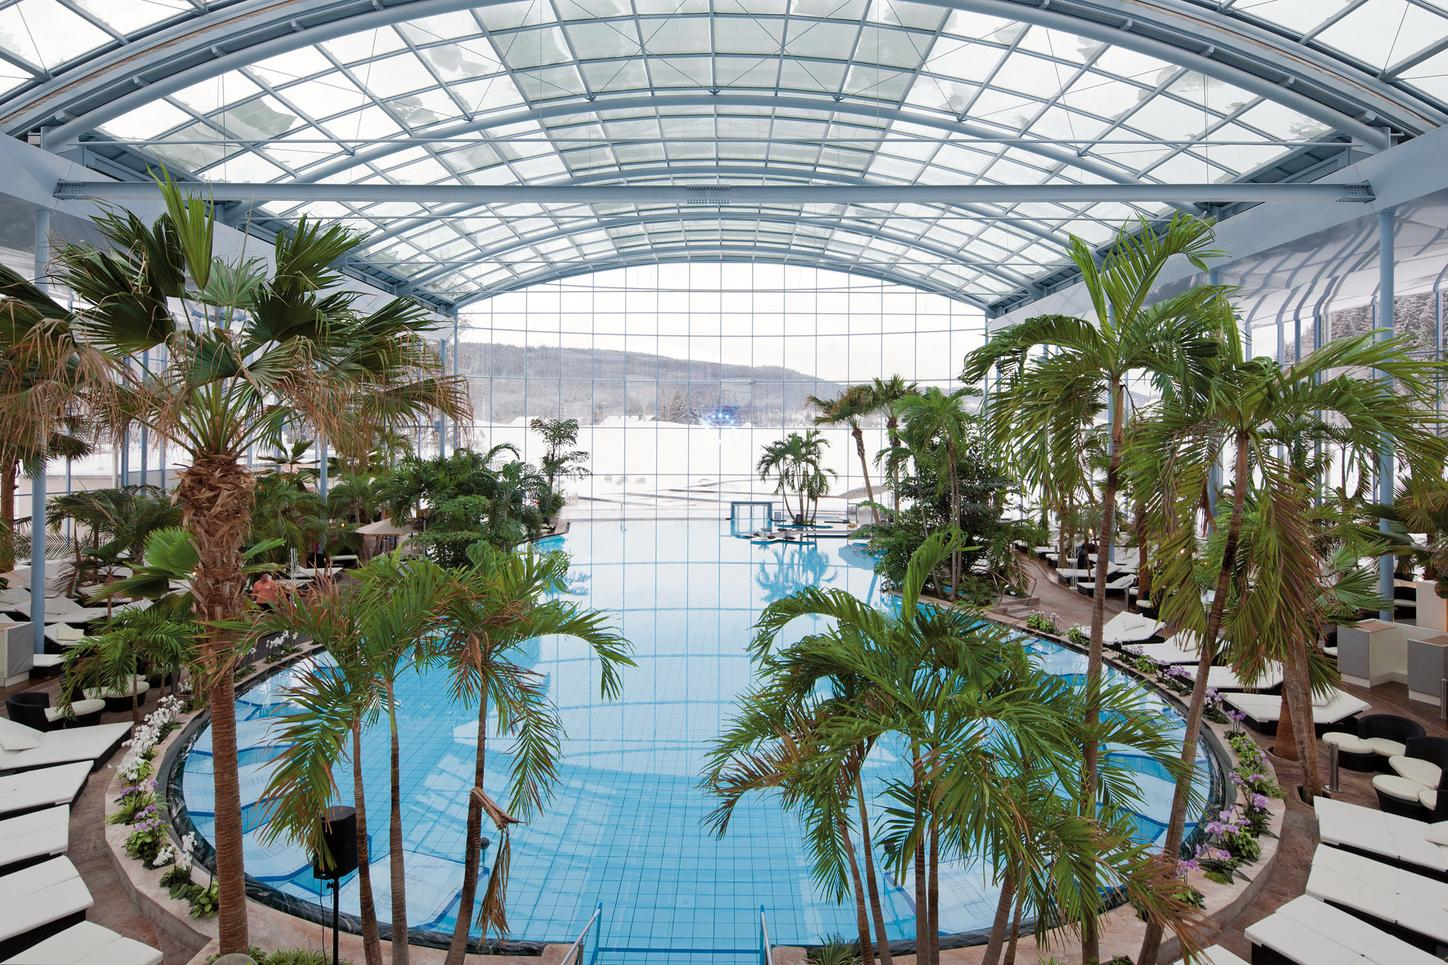 The image shows the bathing paradise in the Black Forest.